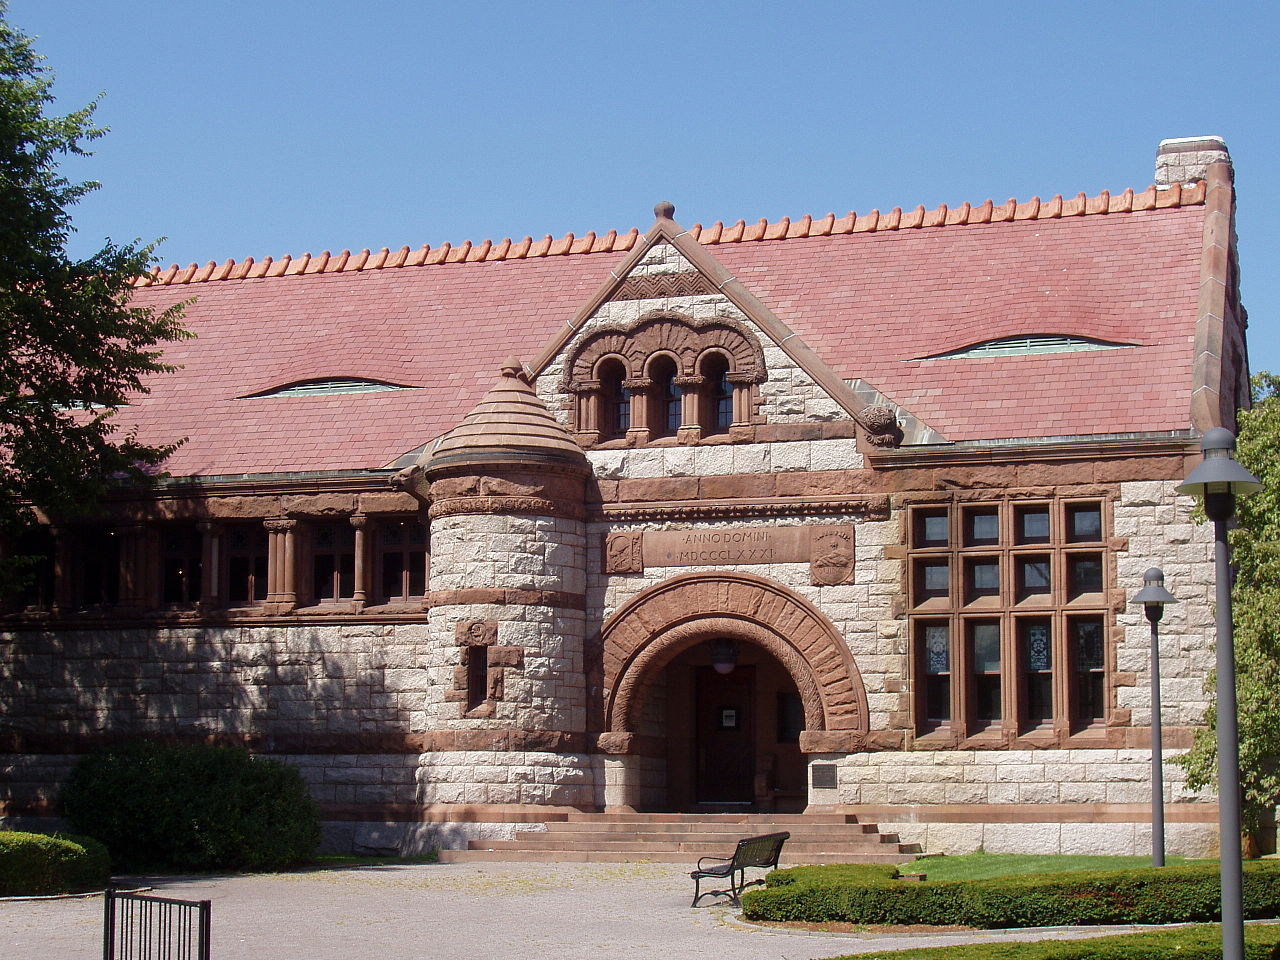 1883Thomas_Crane_Public_Library,_Quincy,_Massachusetts_(Front_view).JPG